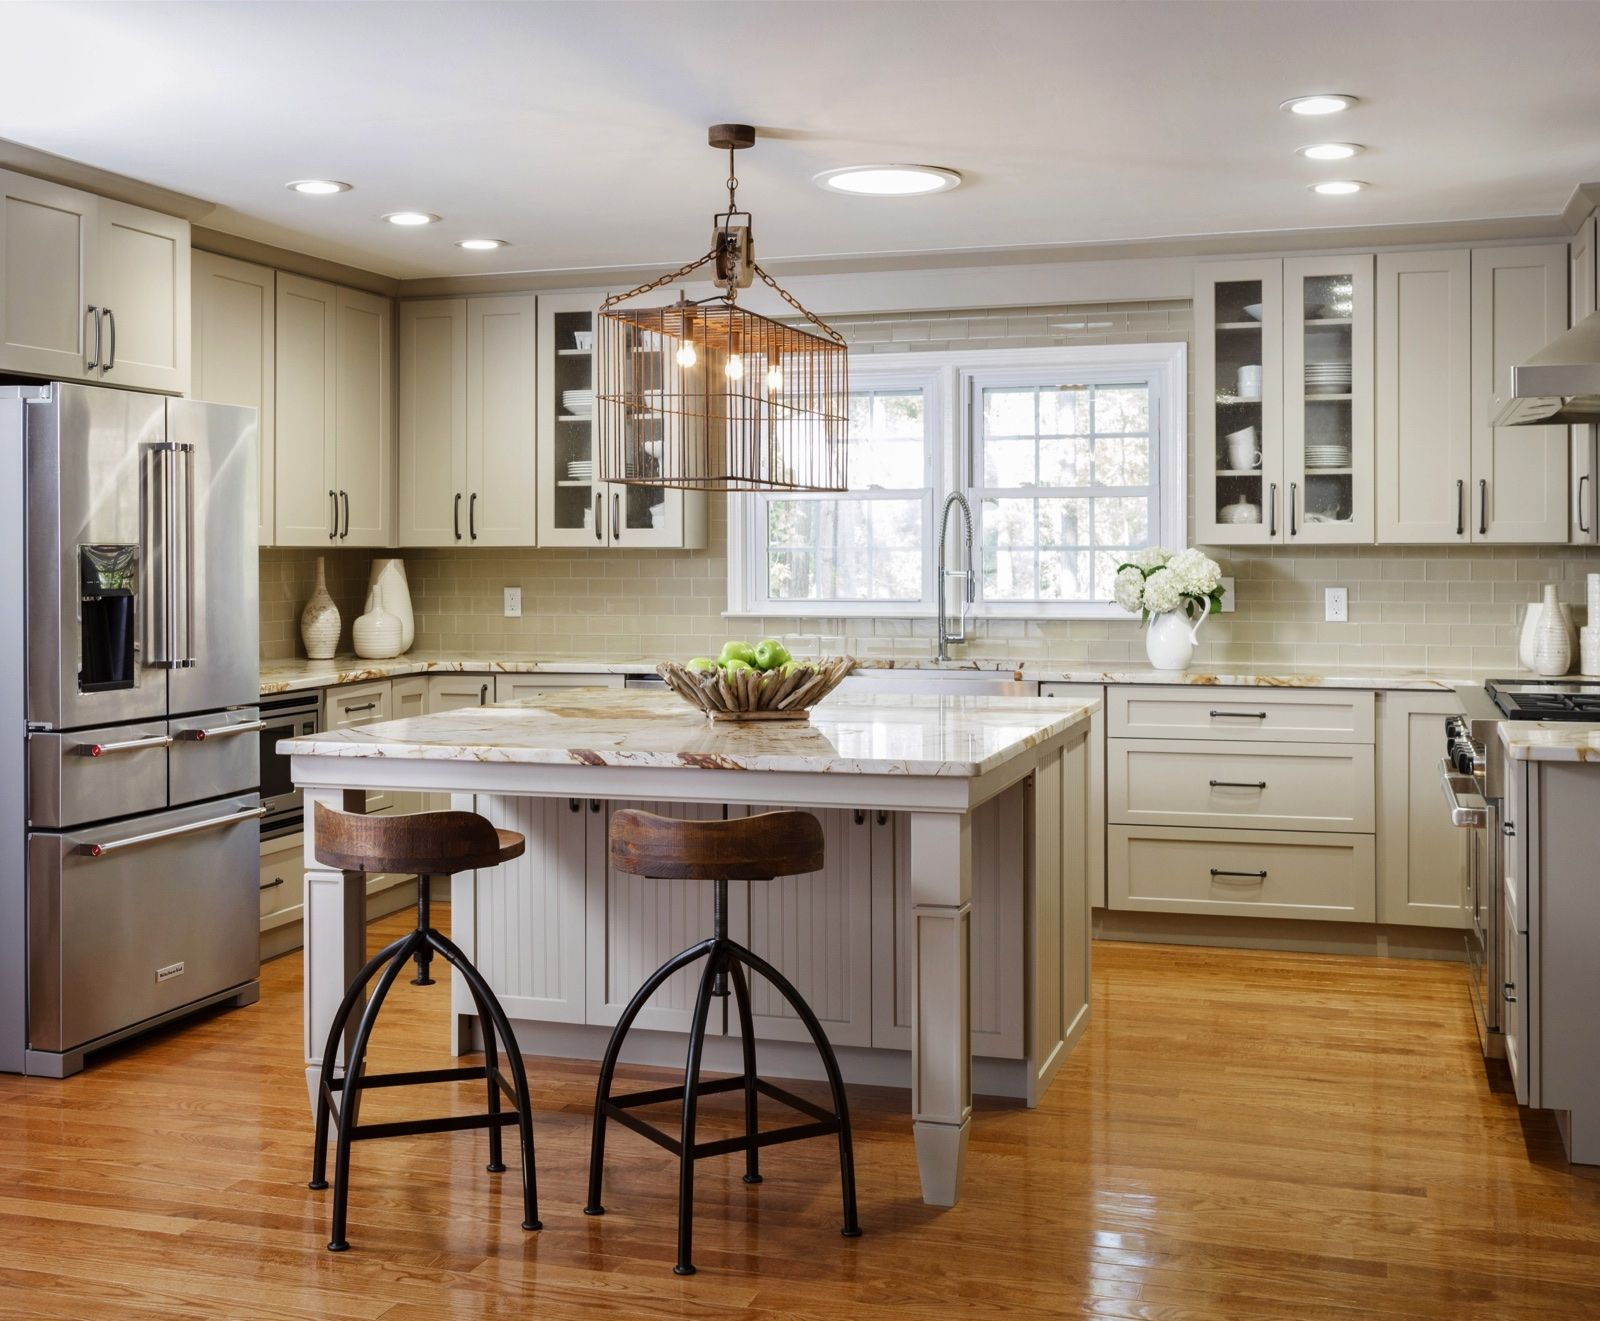 Tru Cabinetry Kcma Certified Cabinets Sustainable Kitchen Cabinetry Kitchen